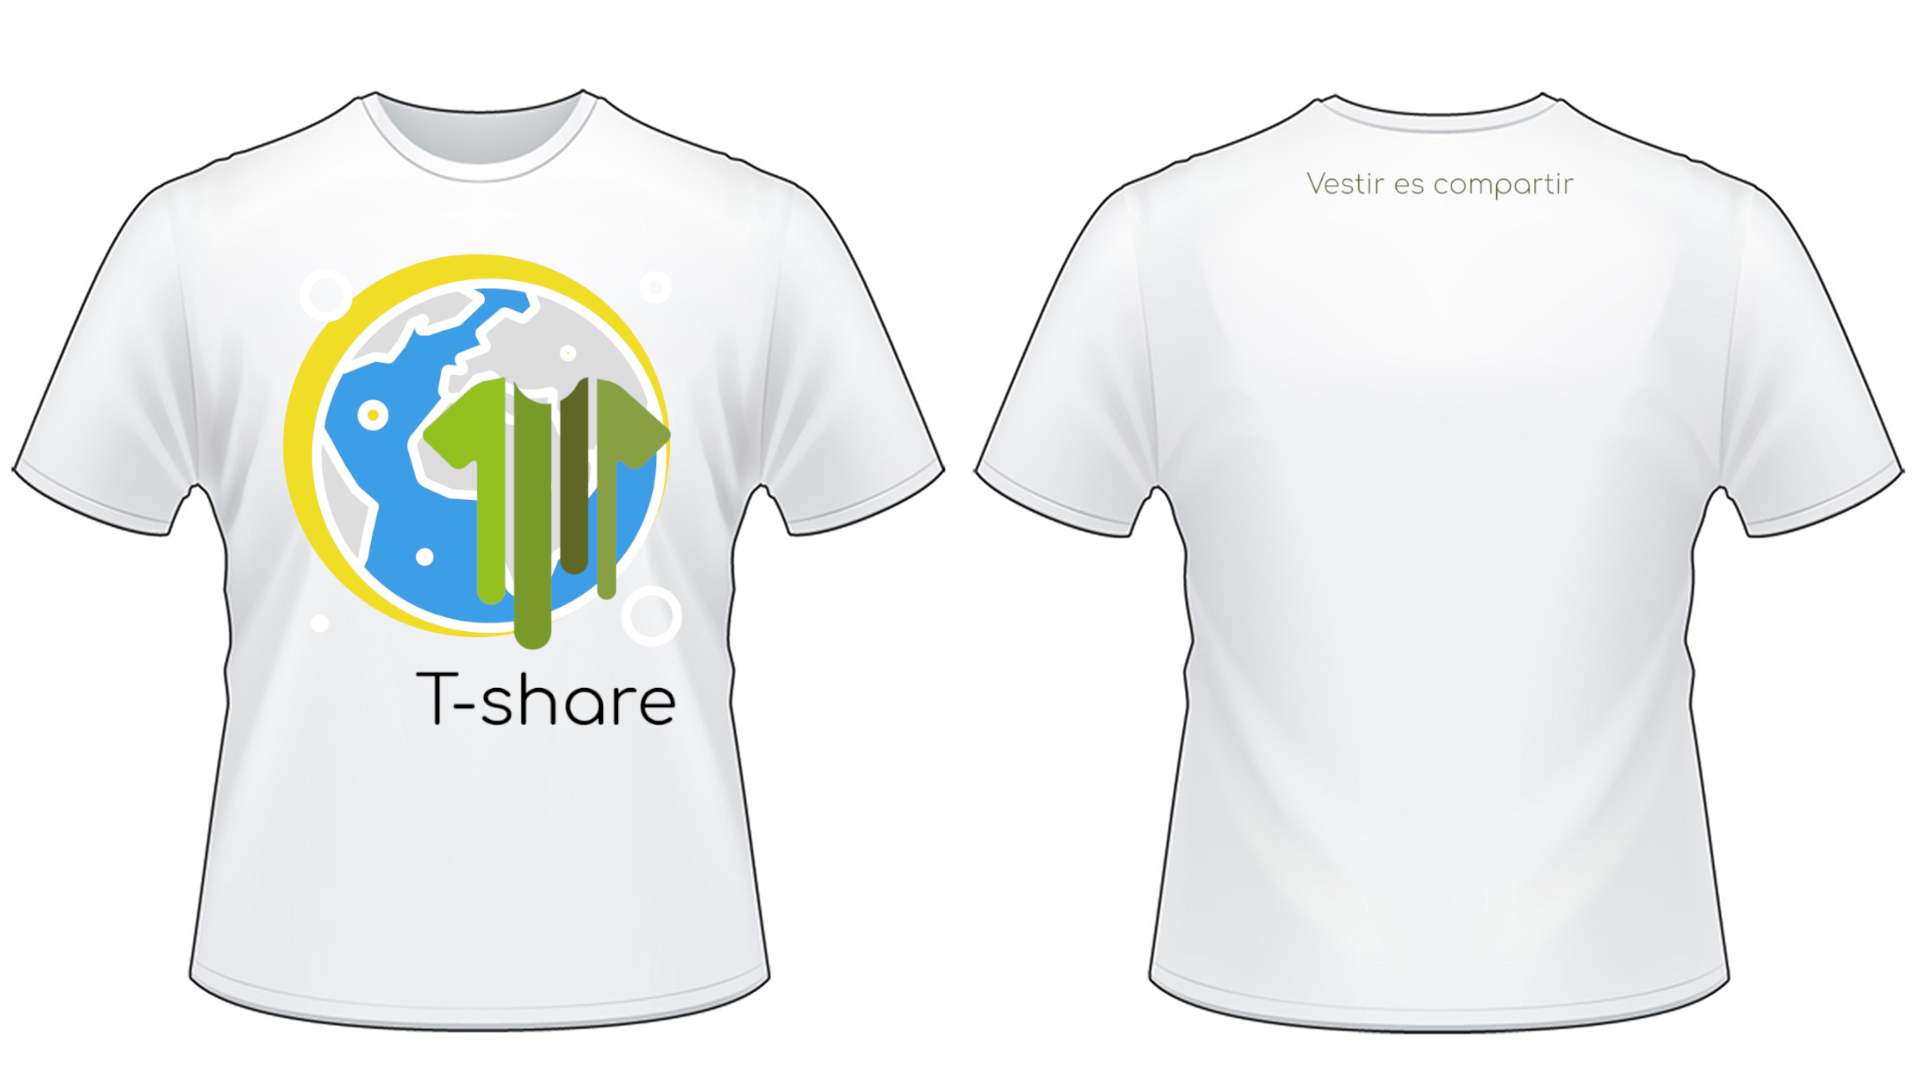 T-share Pitch Deck